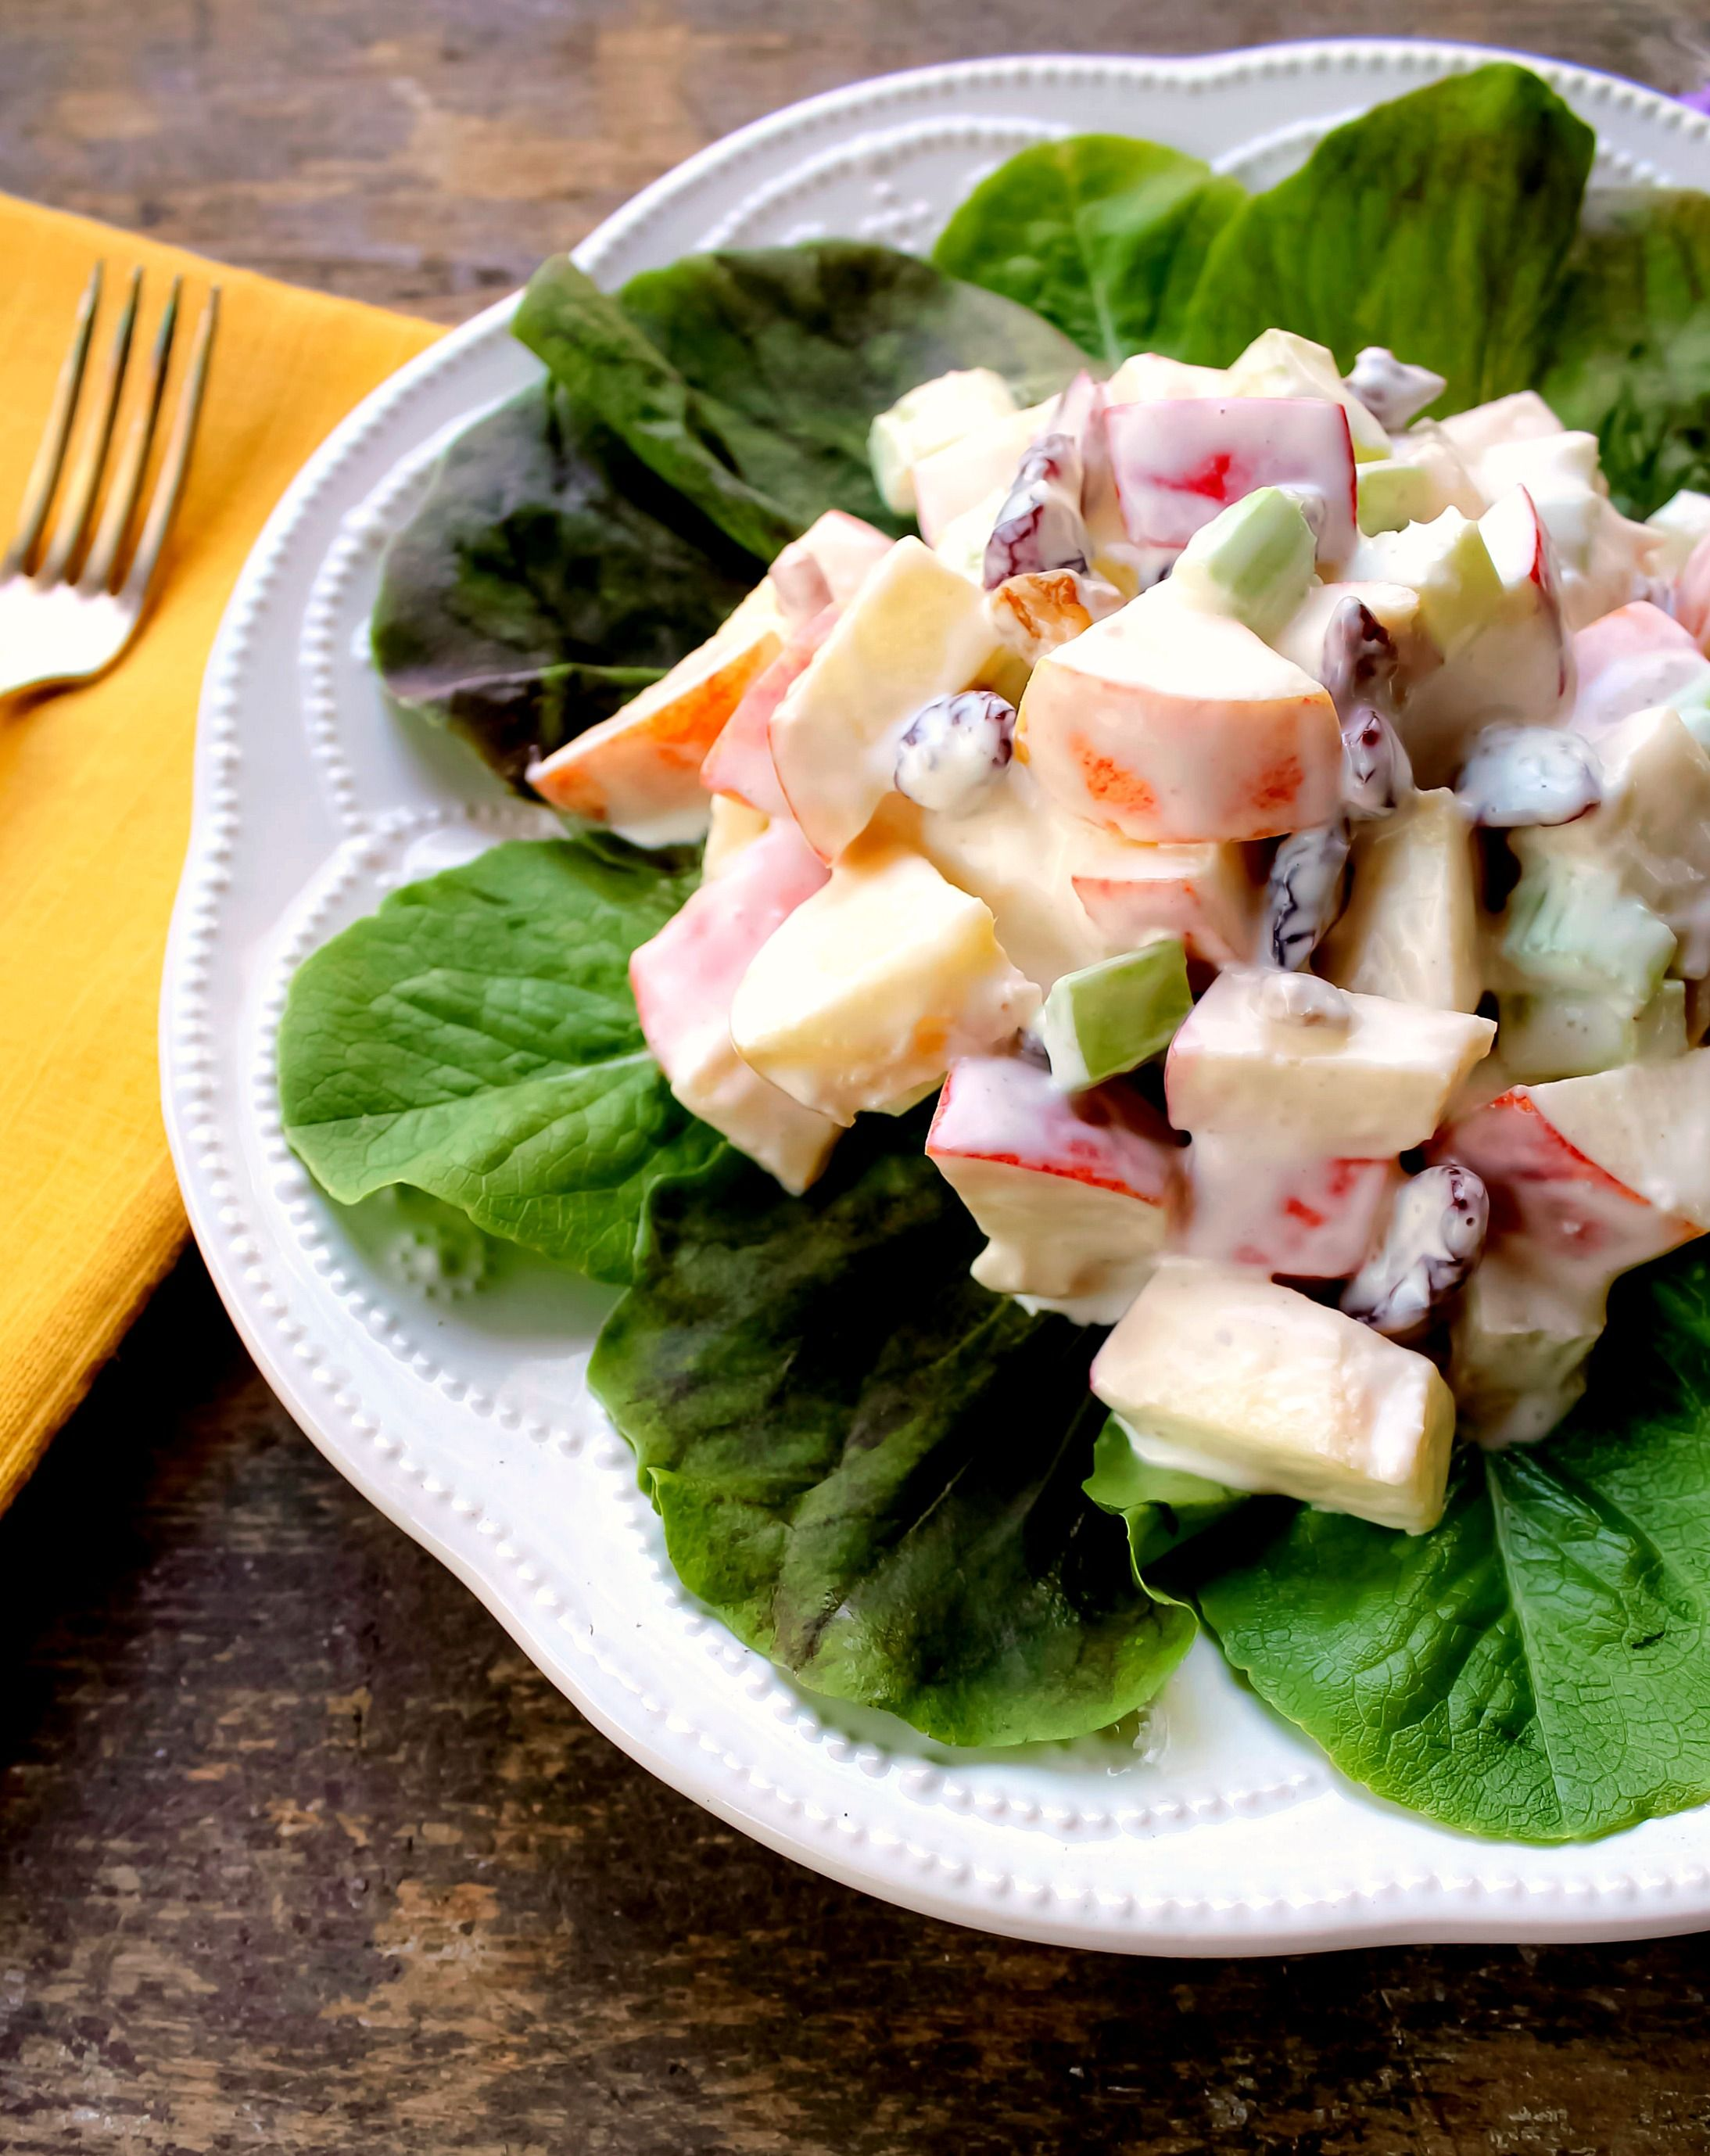 This Delicious Waldorf Salad Has Crispy Apples Nuts Celery And Cranberries Enveloped In A Mayonnaise X2f Sour Cream Waldorf Salad Recipes Best Salad Recipes